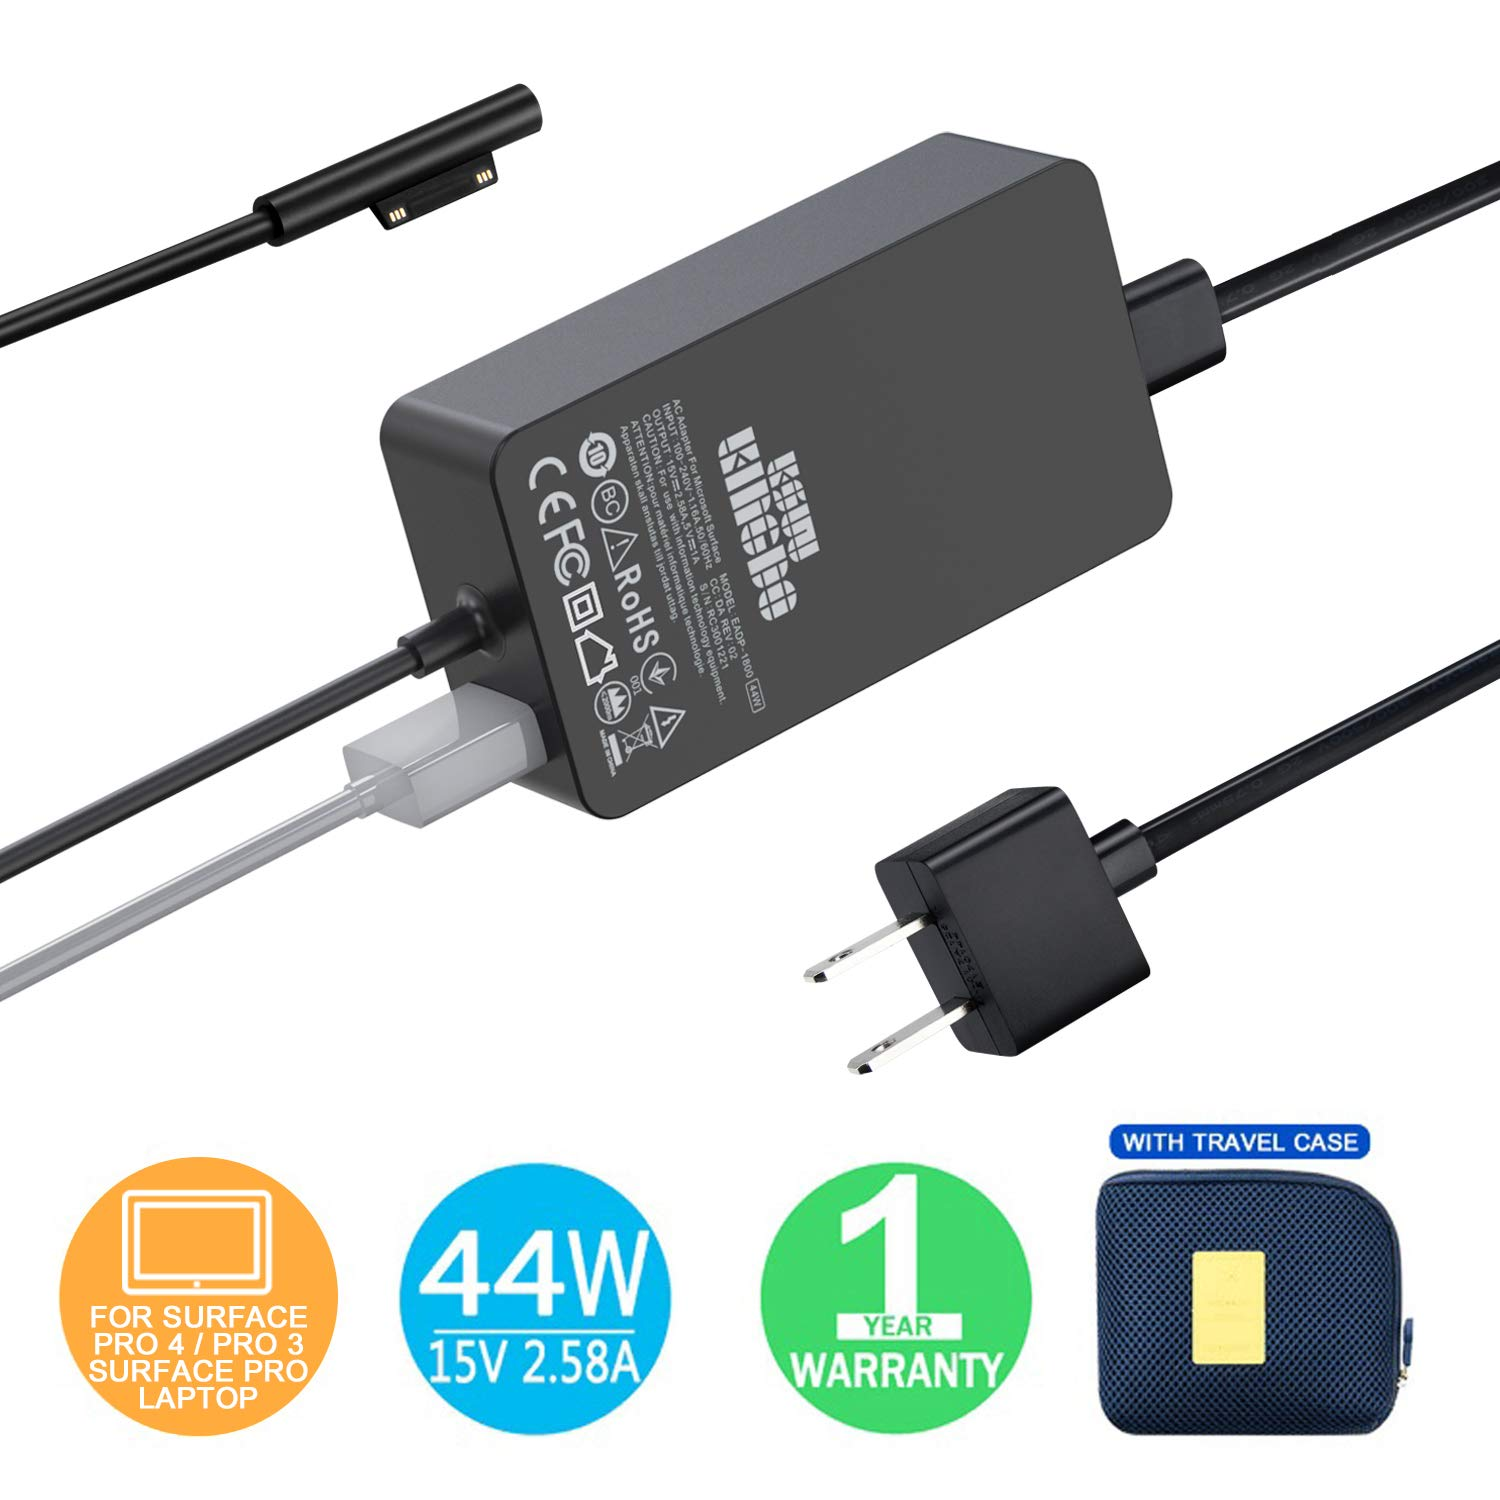 Amazoncom Surface Pro Surface Laptop Charger 44w 15v 258a Power